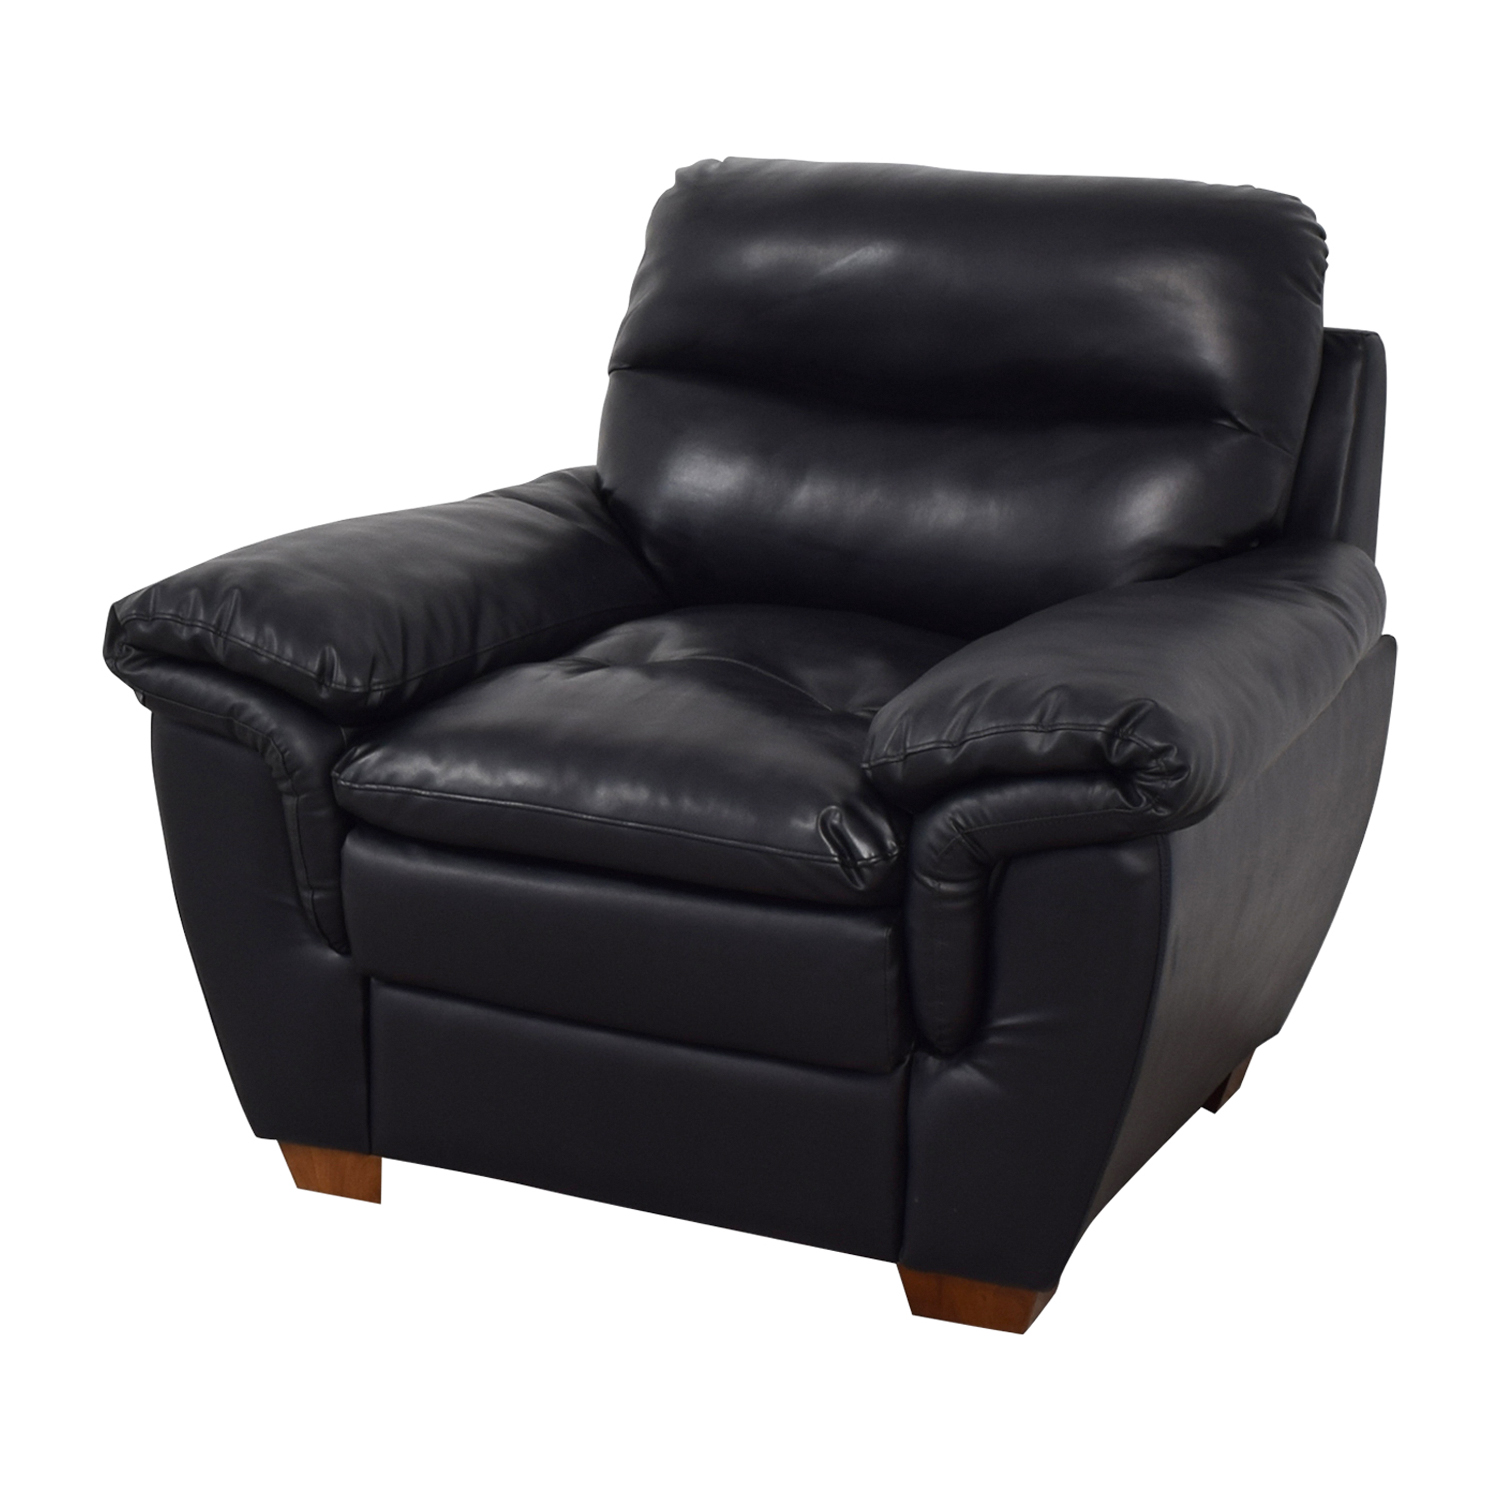 buy Jennifer Furniture Wilton Black Accent Chair Jennifer Furniture Chairs